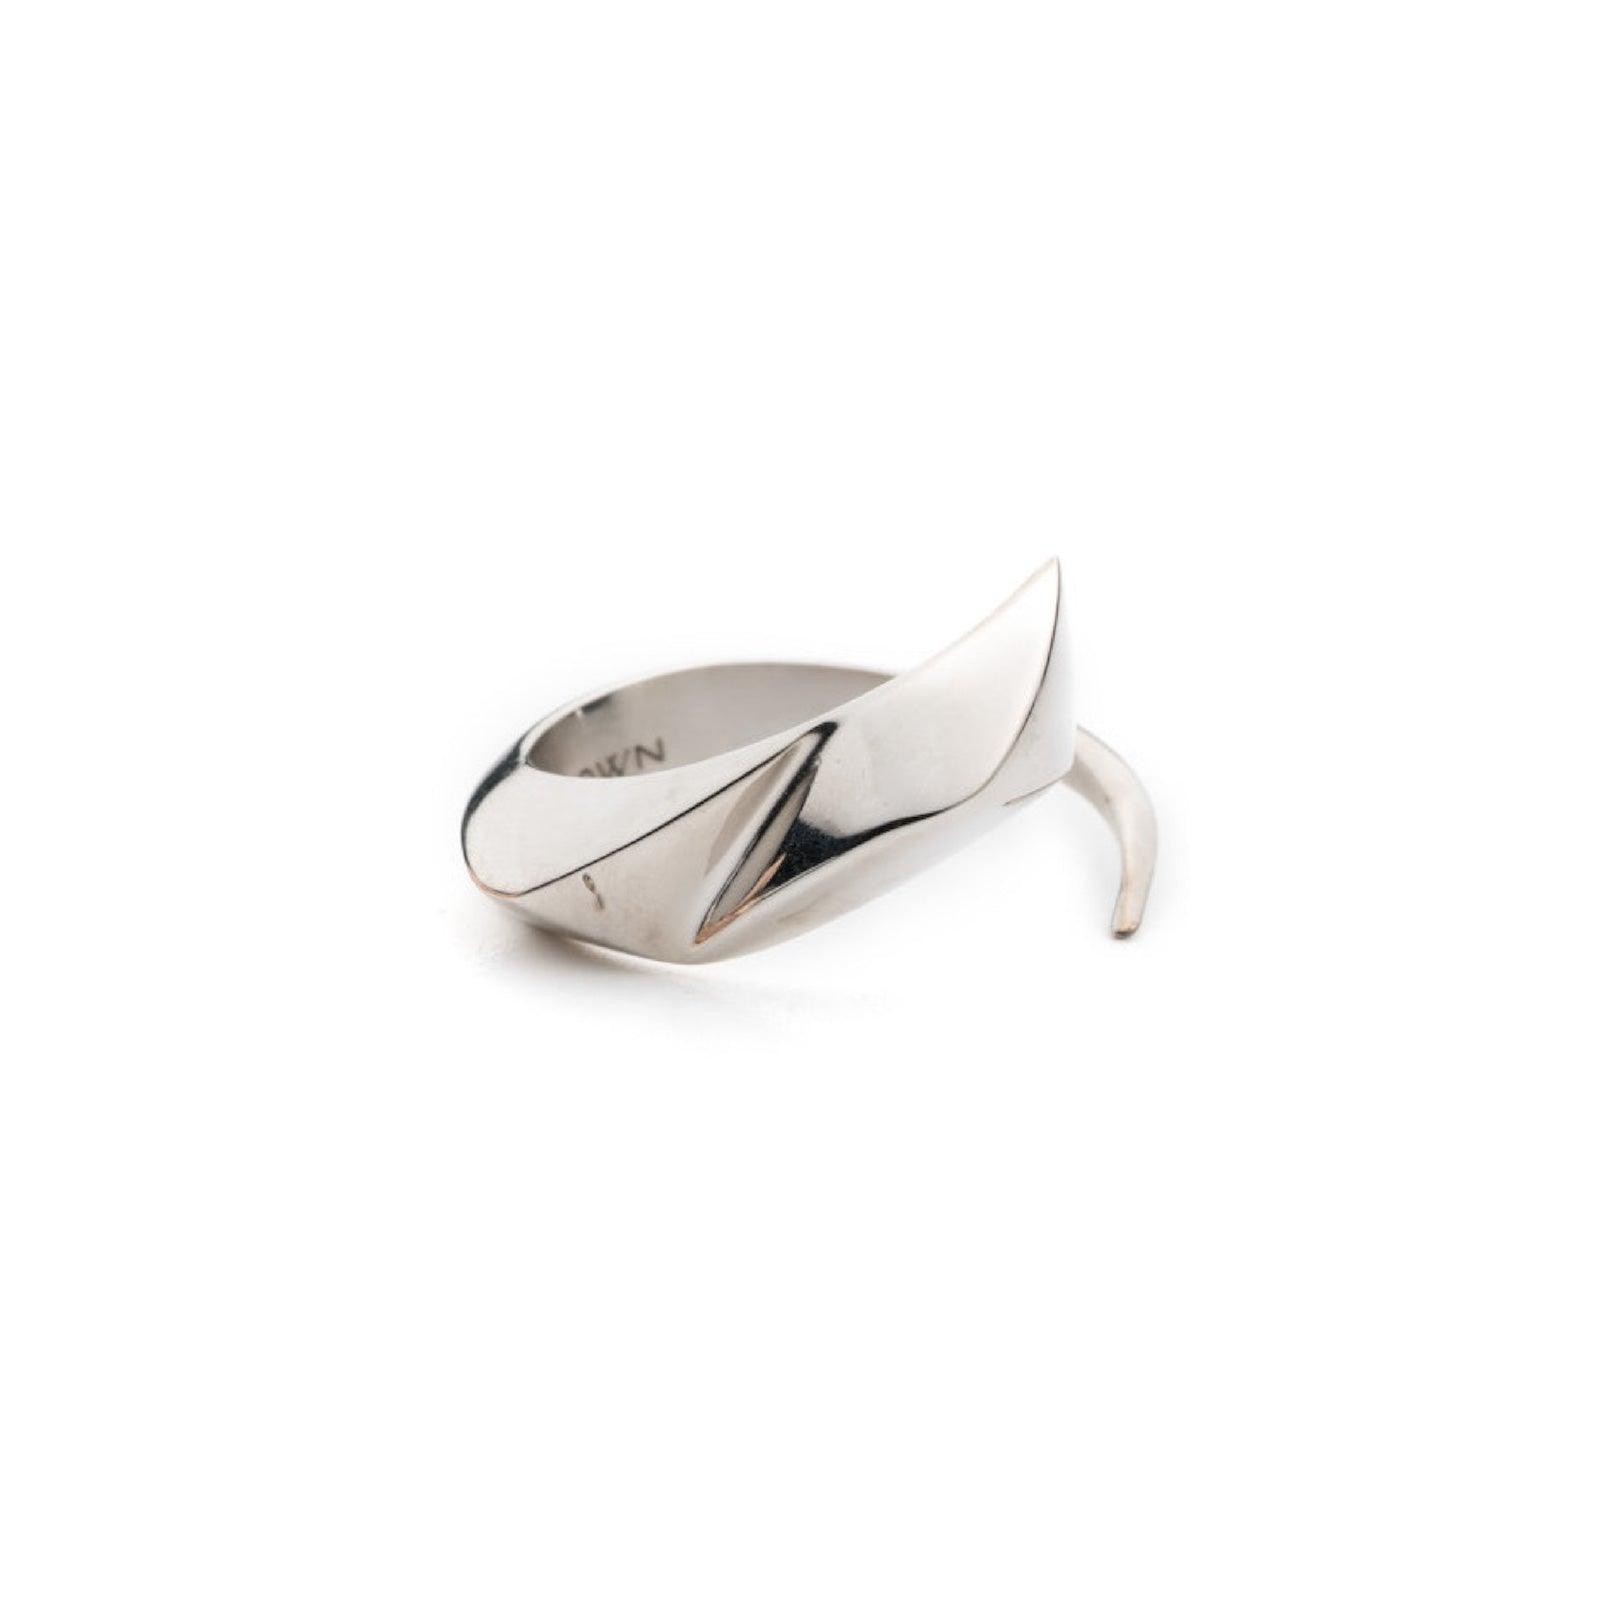 PRIZM WRAP RING - SILVER PLATED BRASS